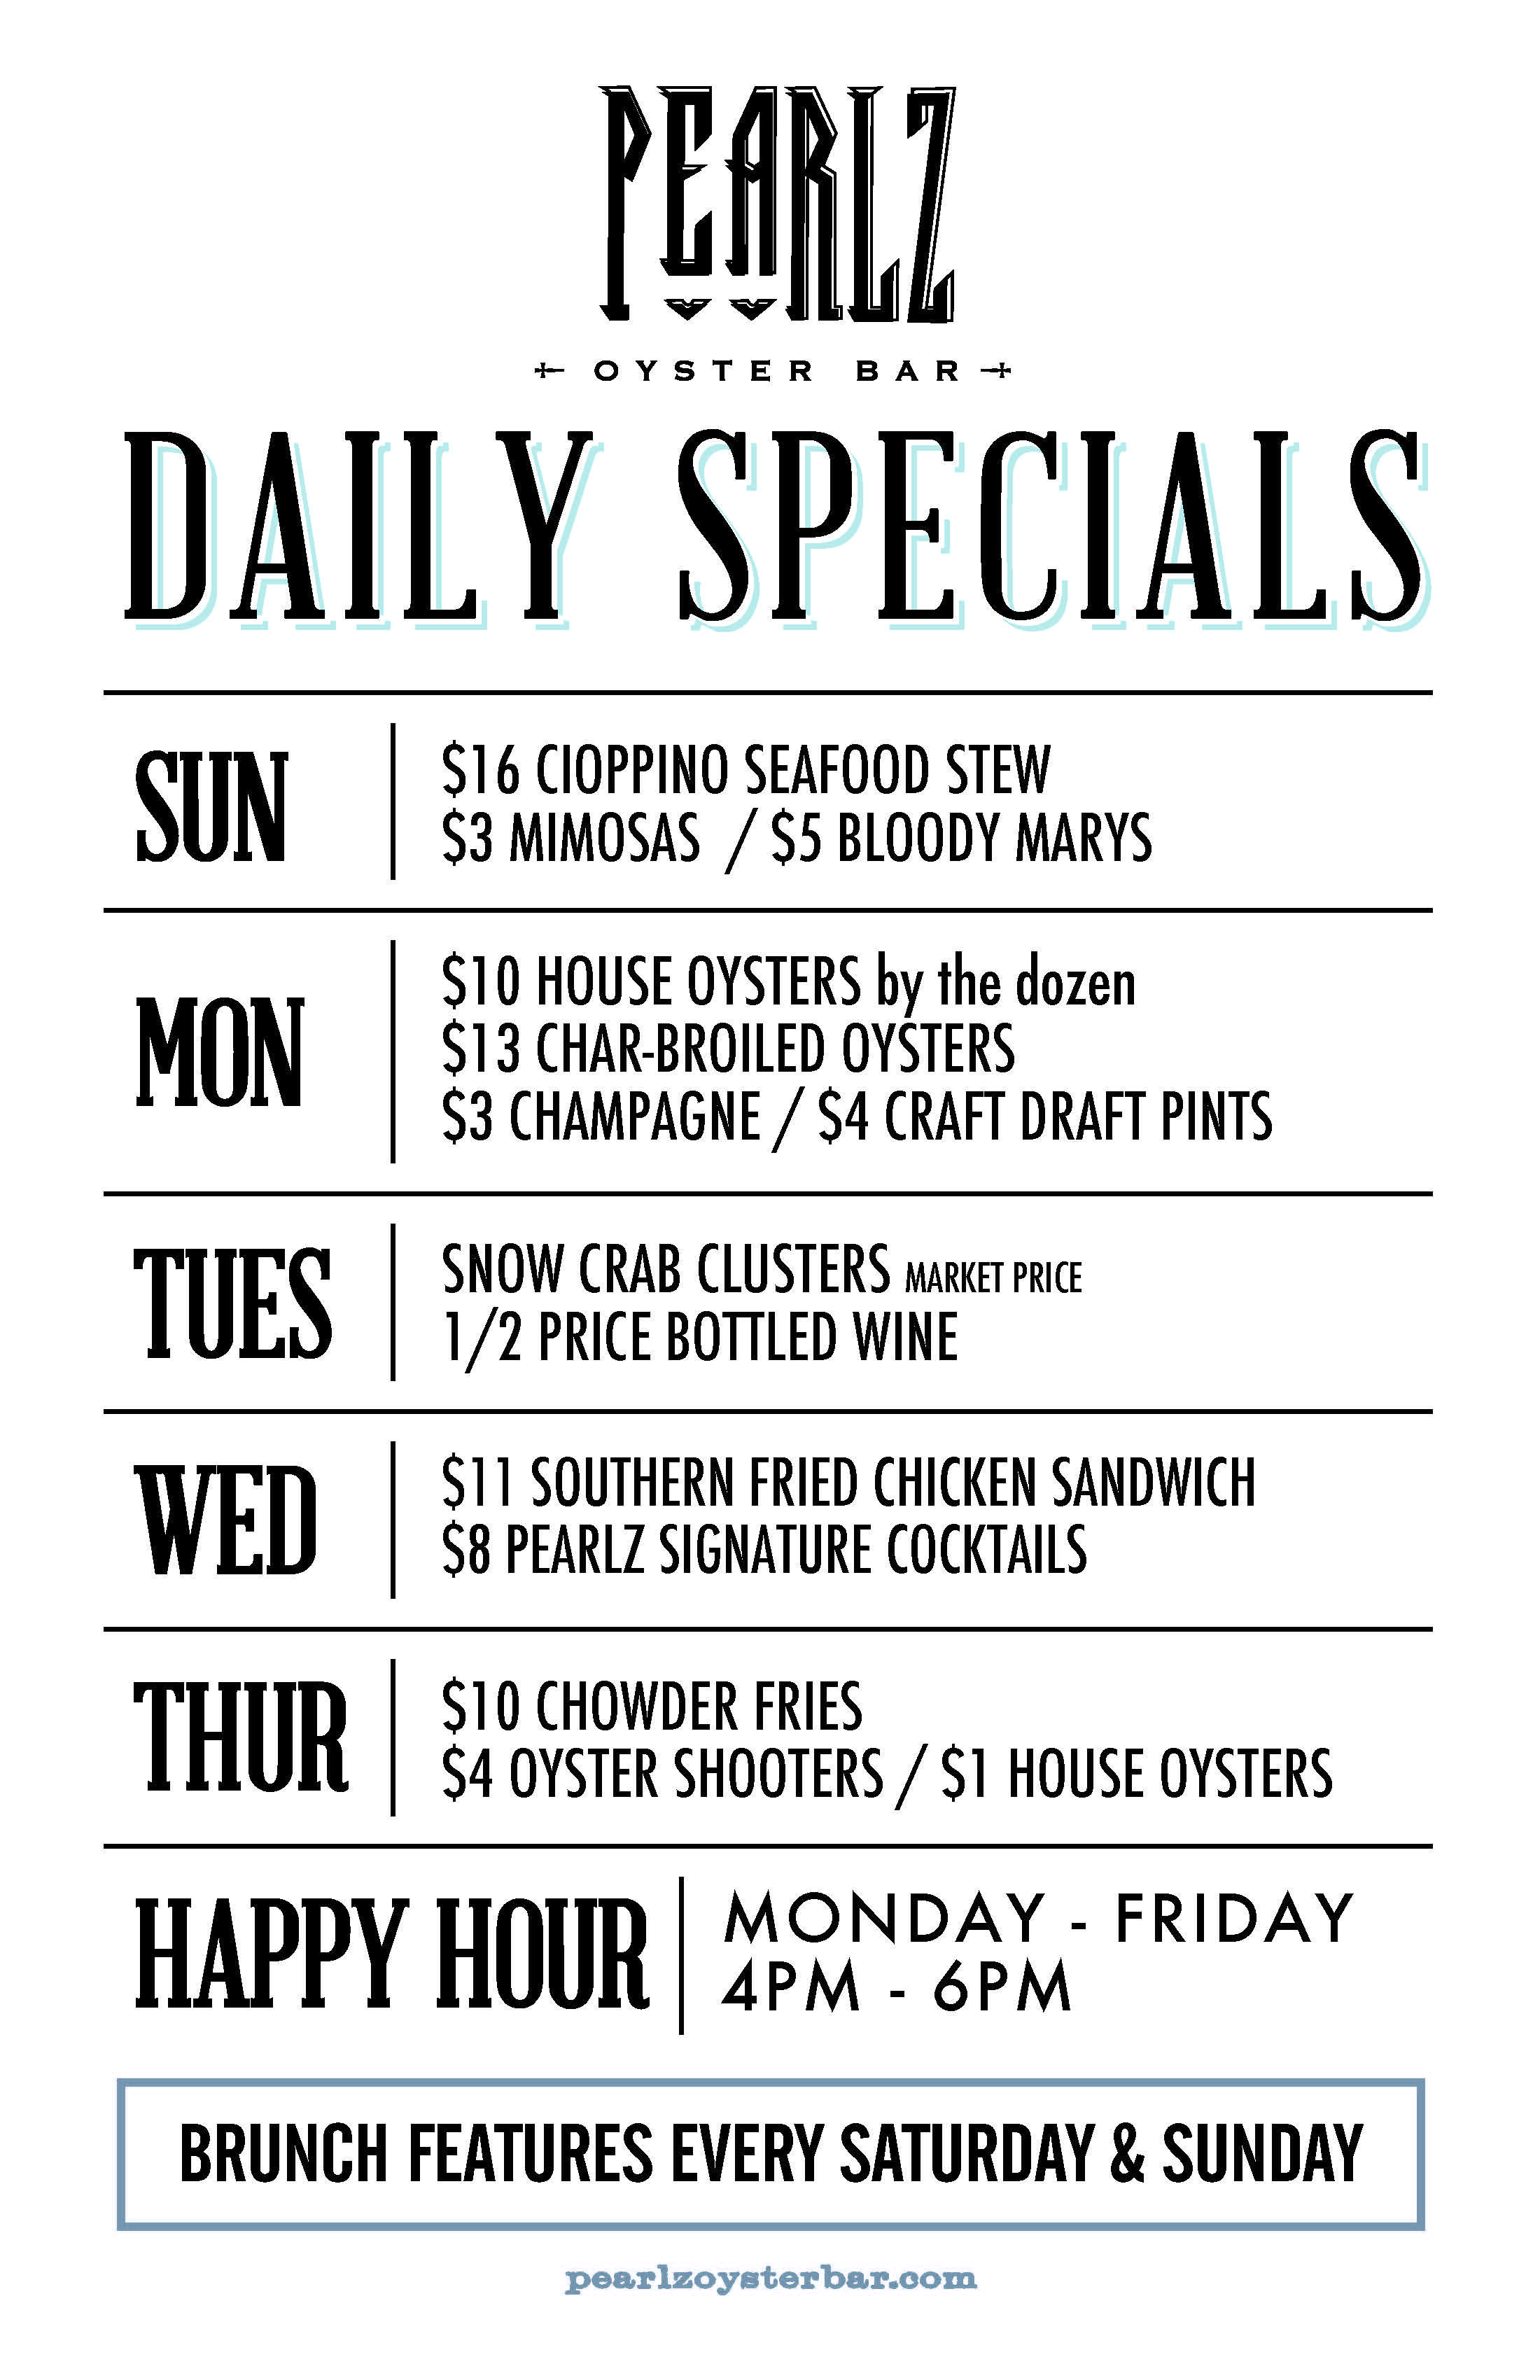 Pearlz Charlotte Daily Specials FEB 2017.jpg